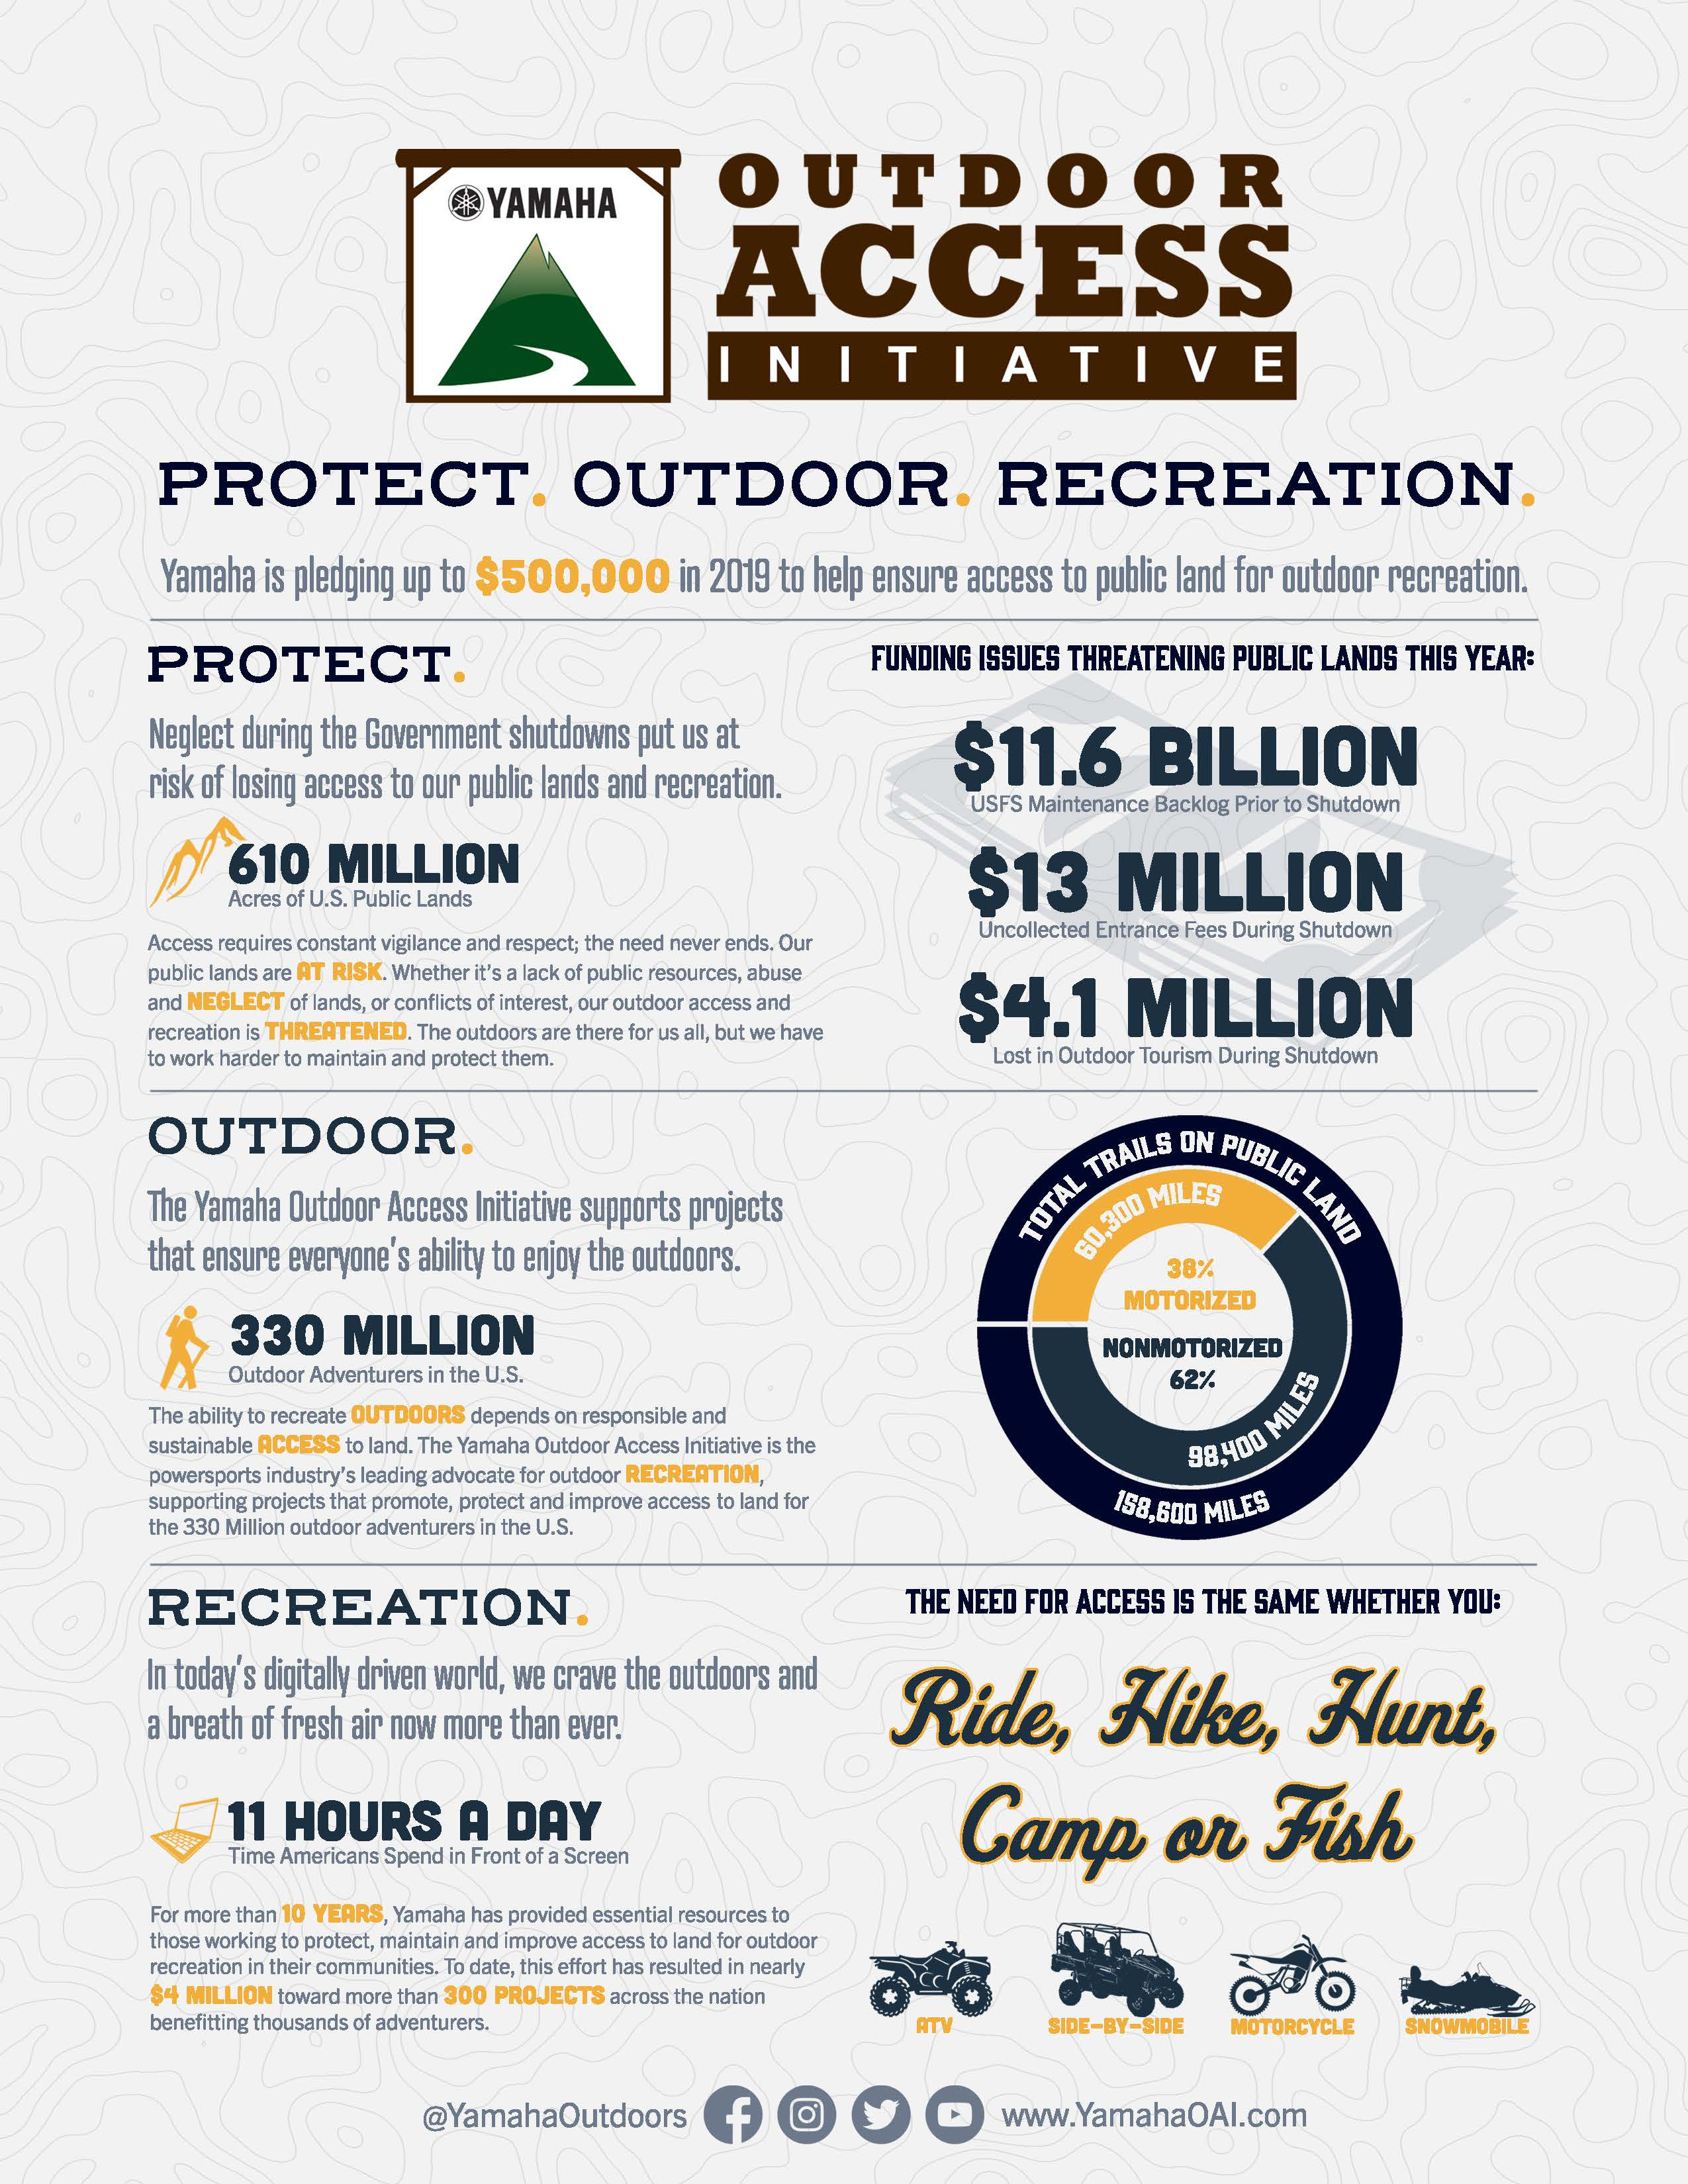 Yamaha Pledges Up To $500,000 in 2019 to Protect Outdoor Recreation